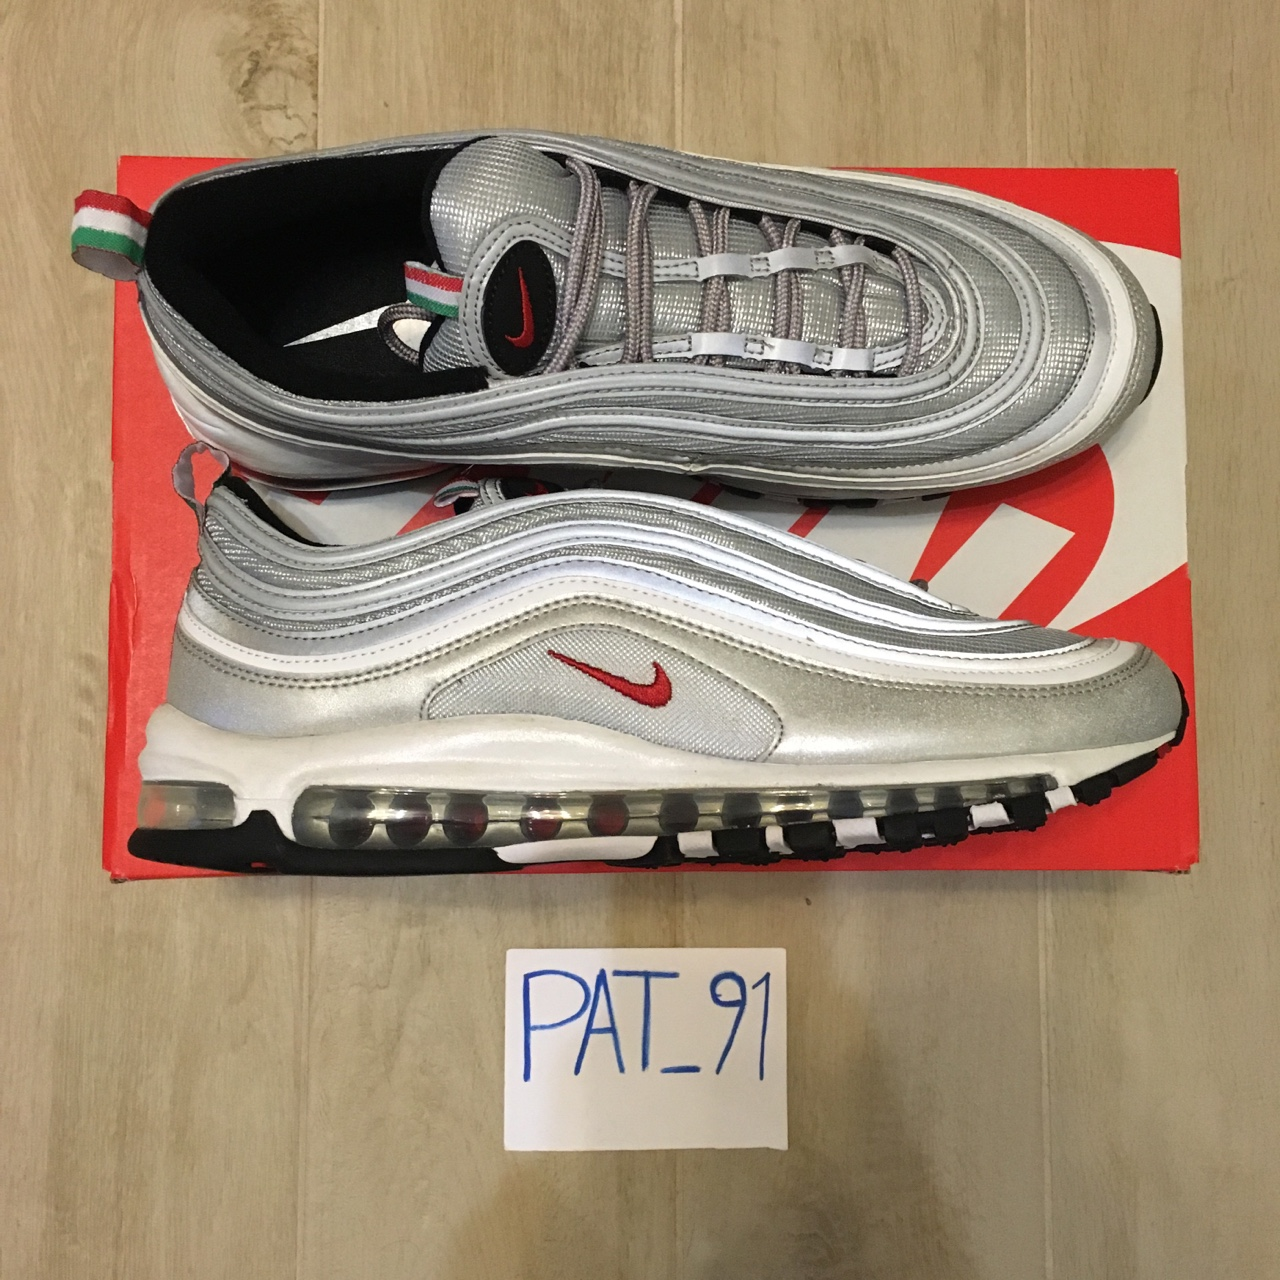 Shilling confess Proud  Nike Air Max 97